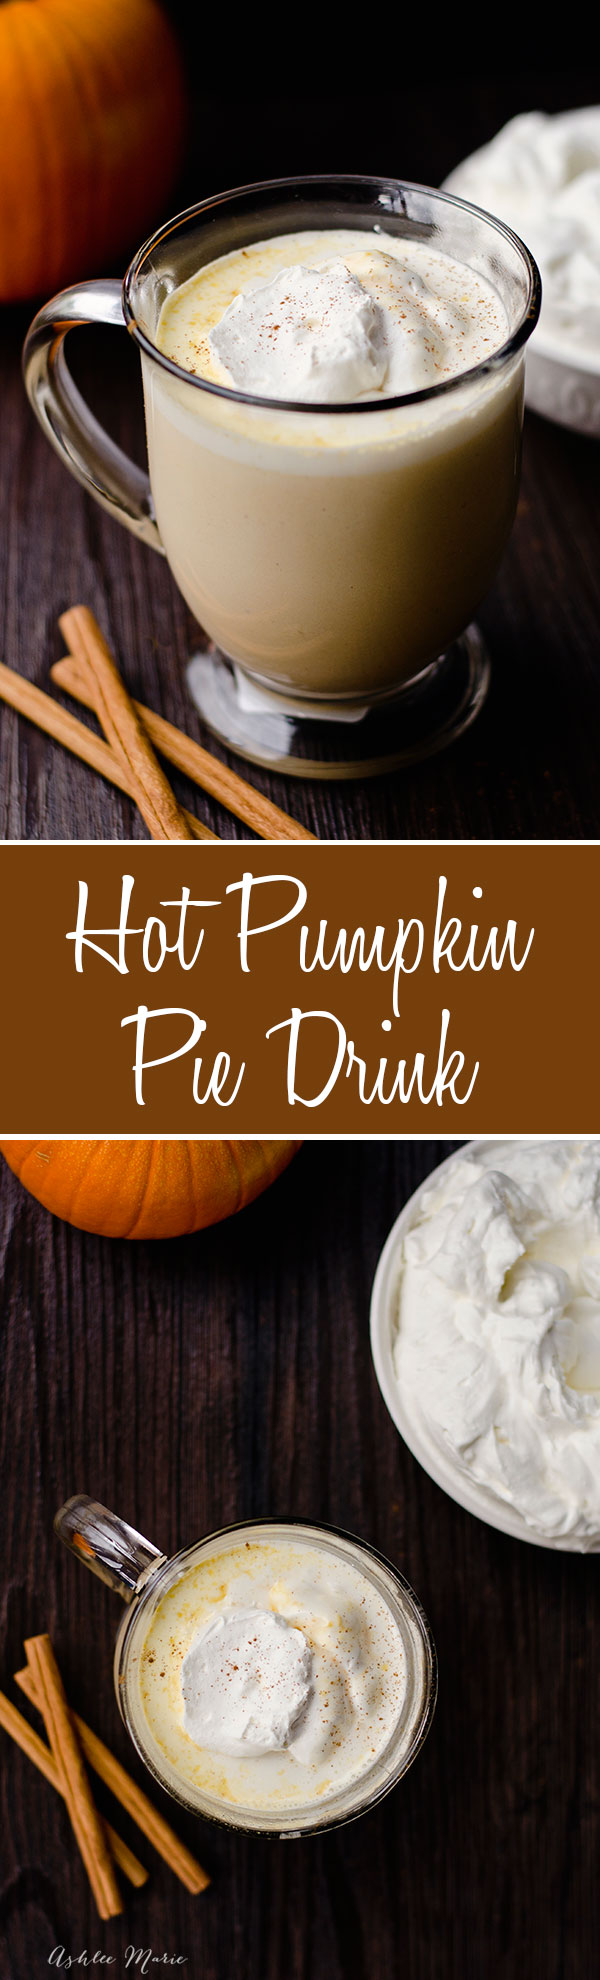 a pumpkin version of hot chocolate, it may sound strange but it's divine.  Creamy, warm with a great pumpkin flavor but not too strong I enjoy this all fall and everyone who tries it falls in love